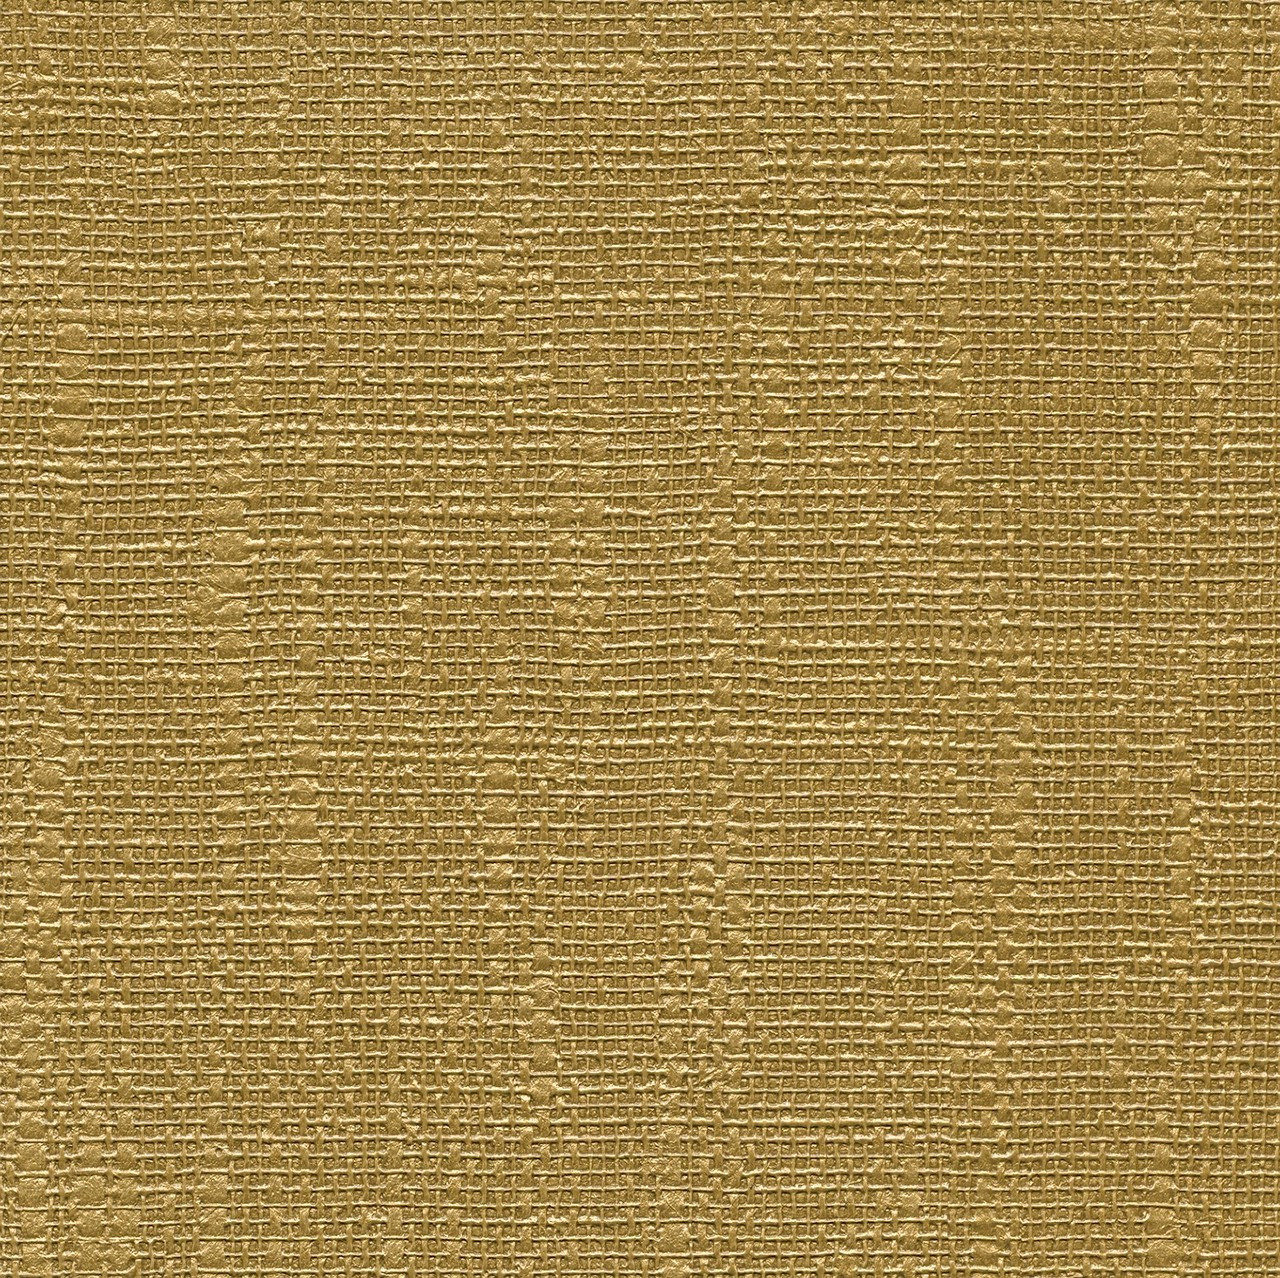 Wd3050 Dianne Rose Gold Textured Shiny Lines Wallpaper